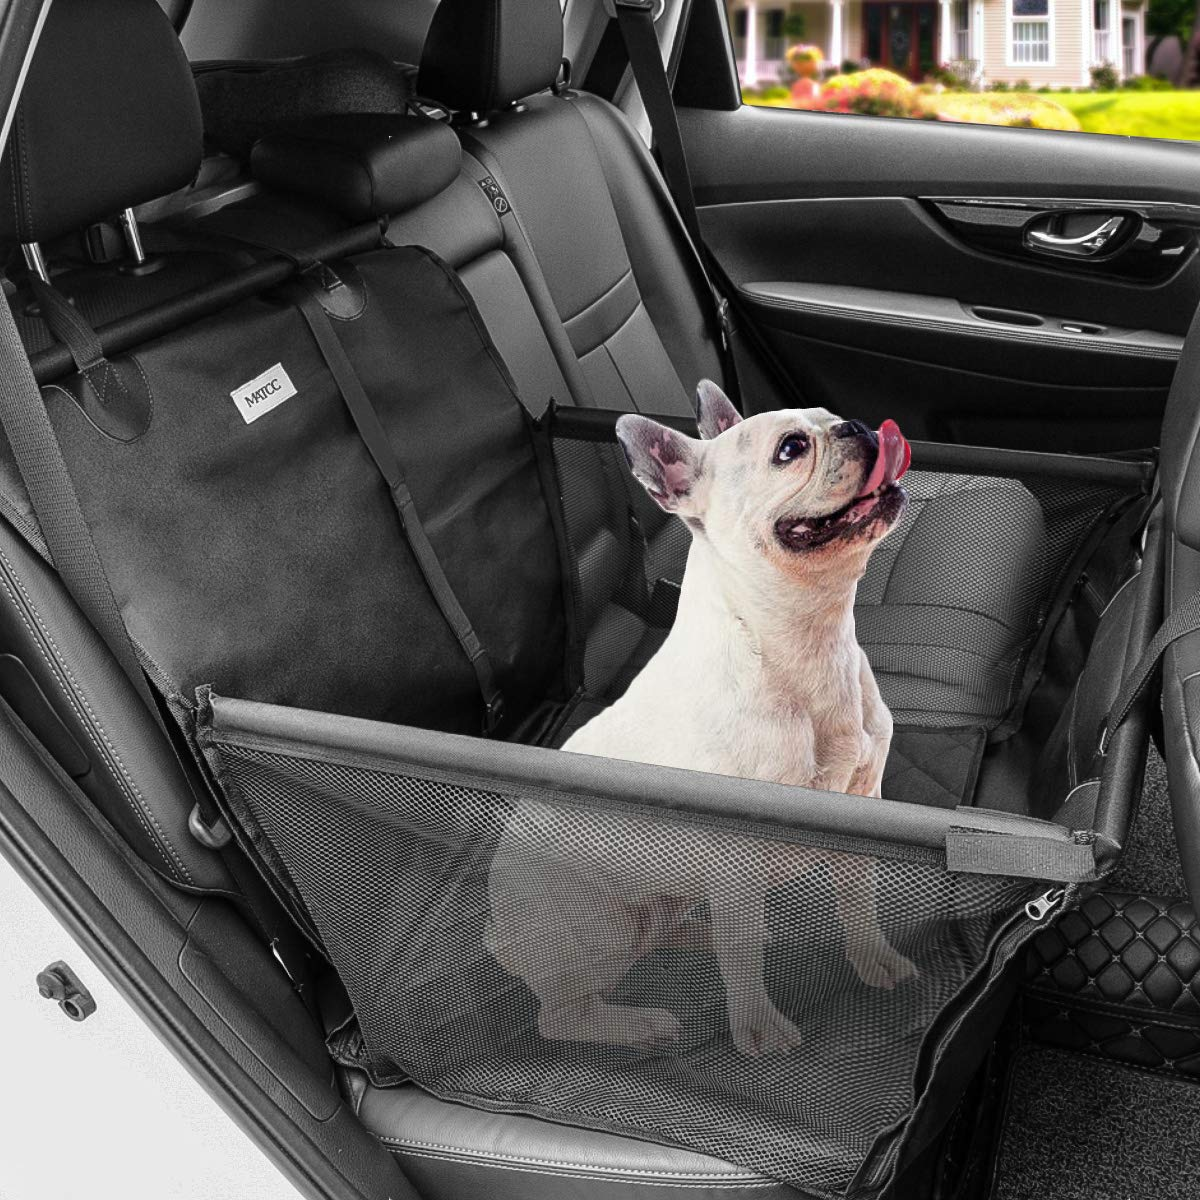 MATCC Dog Car Seat Covers Rear Car Booster Protector for Dogs with Dog Seat Belt Waterproof Nonslip Portable Dog Travel Hammock with Extra Storage Bag for Puppies and Medium Dogs